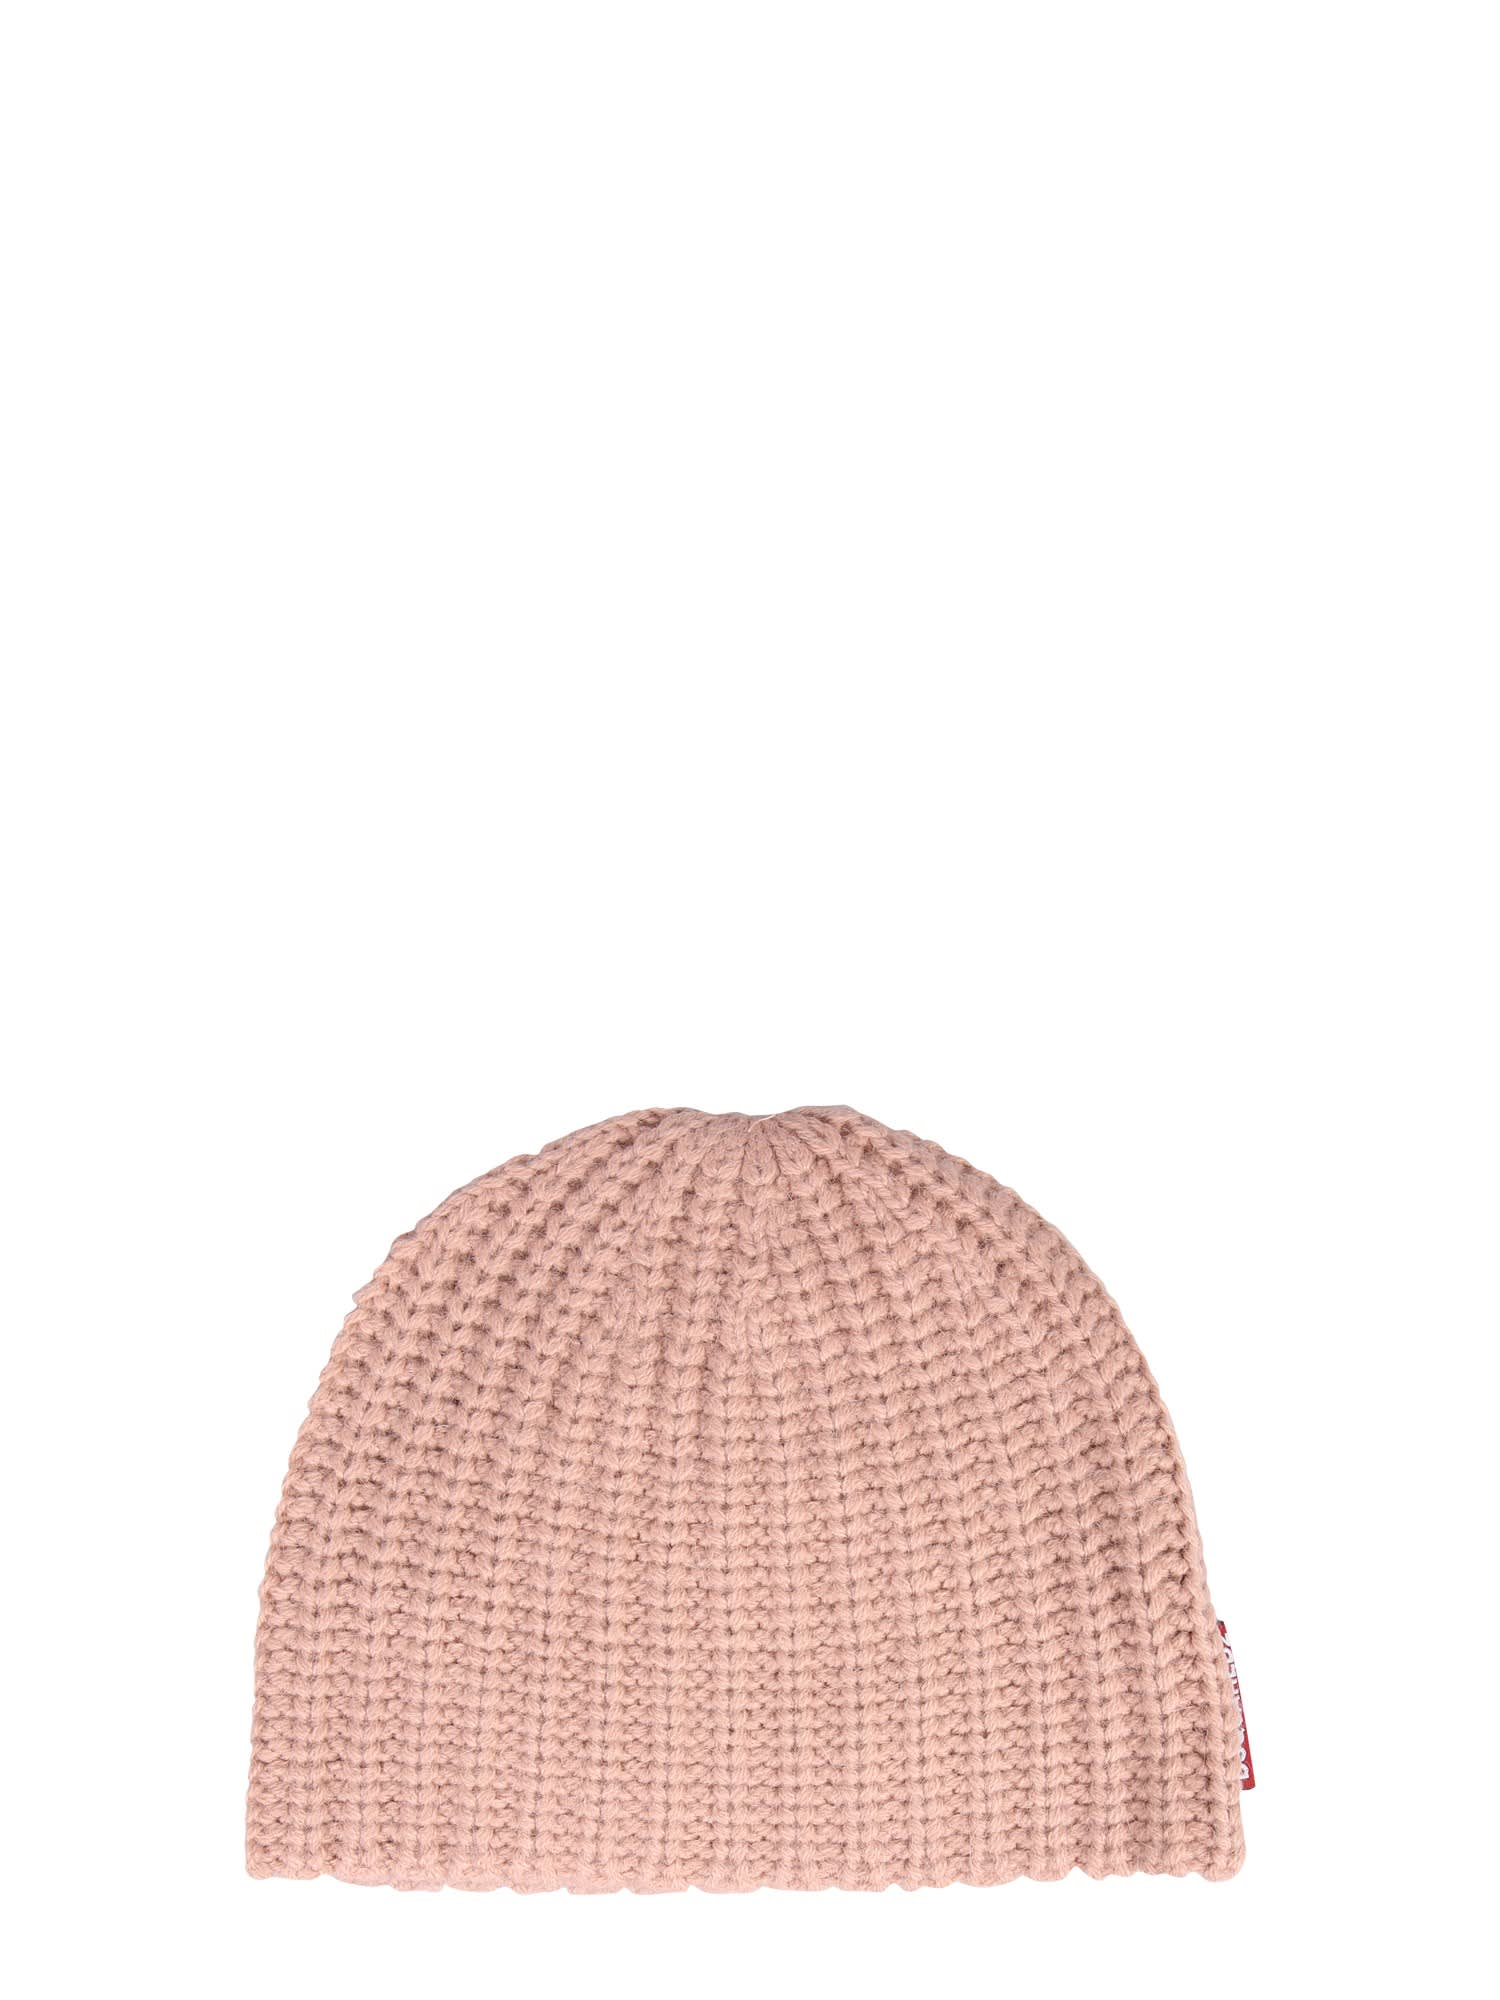 Dsquared2 Hats KNITTED HAT